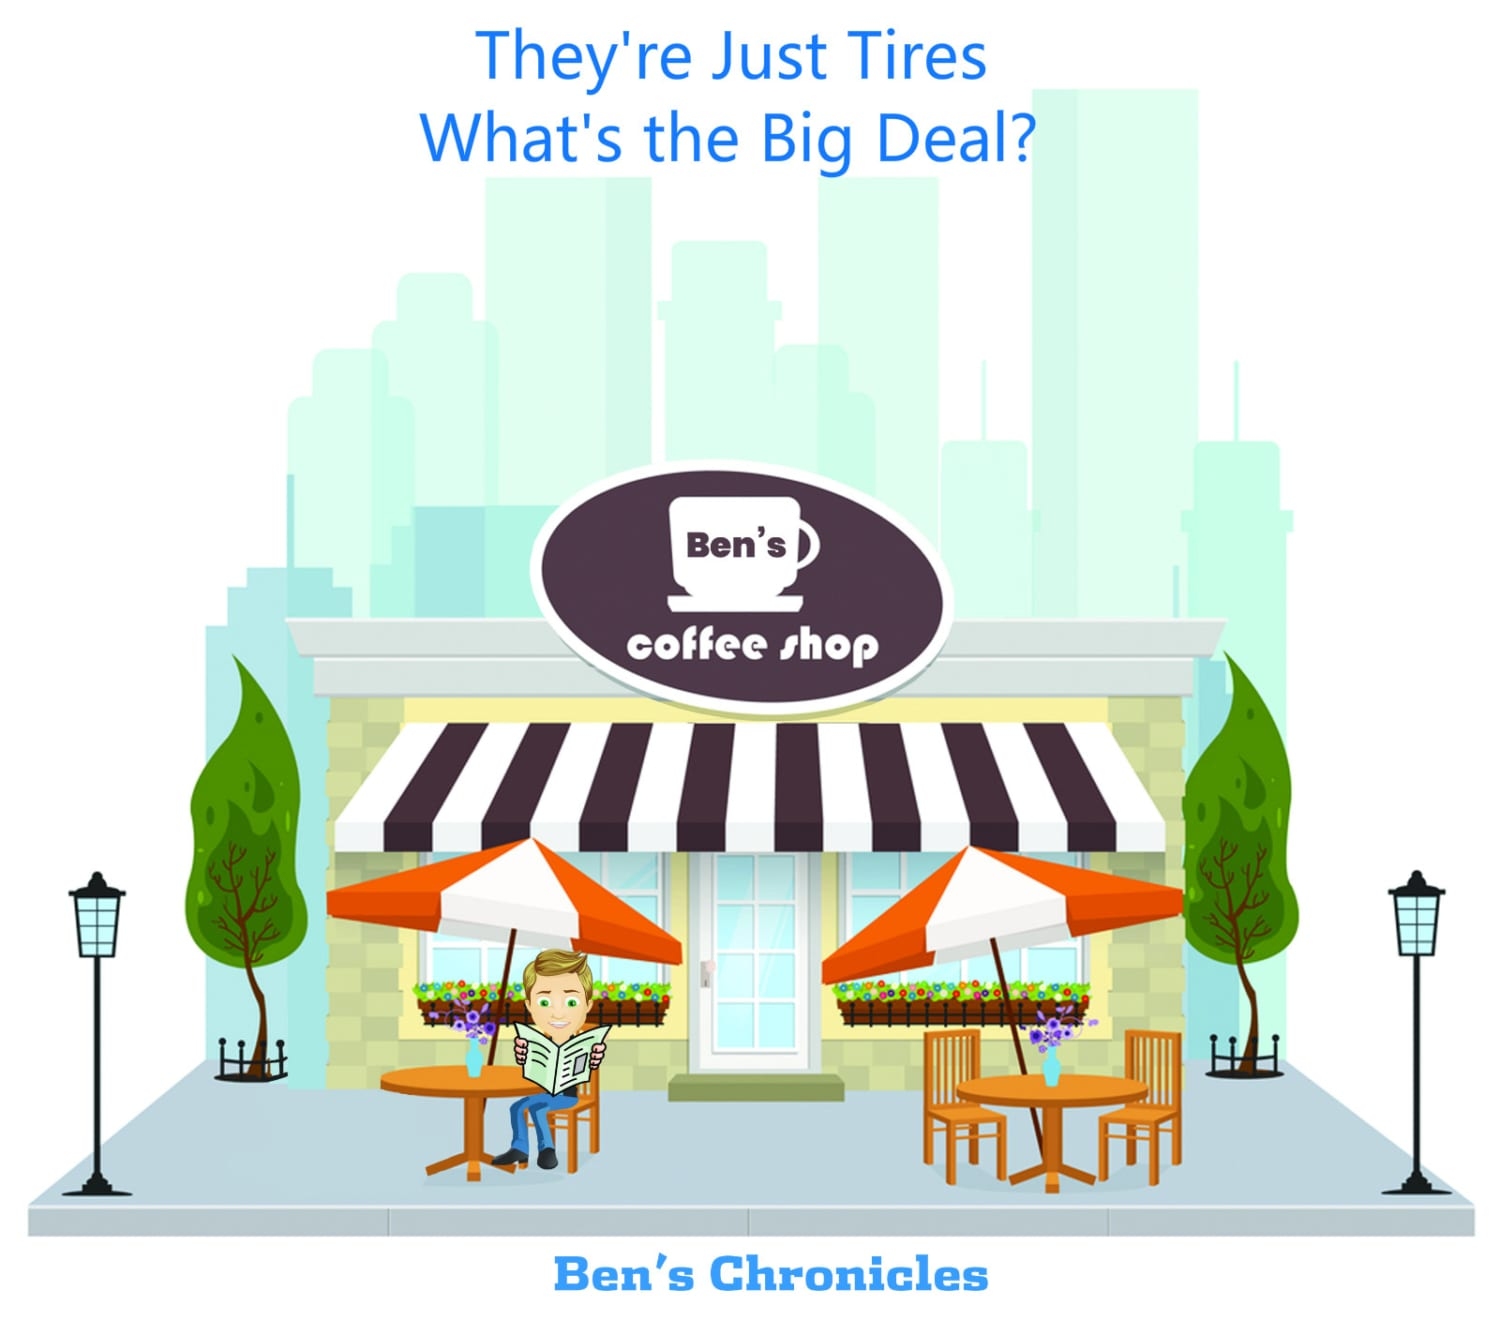 they are just tires